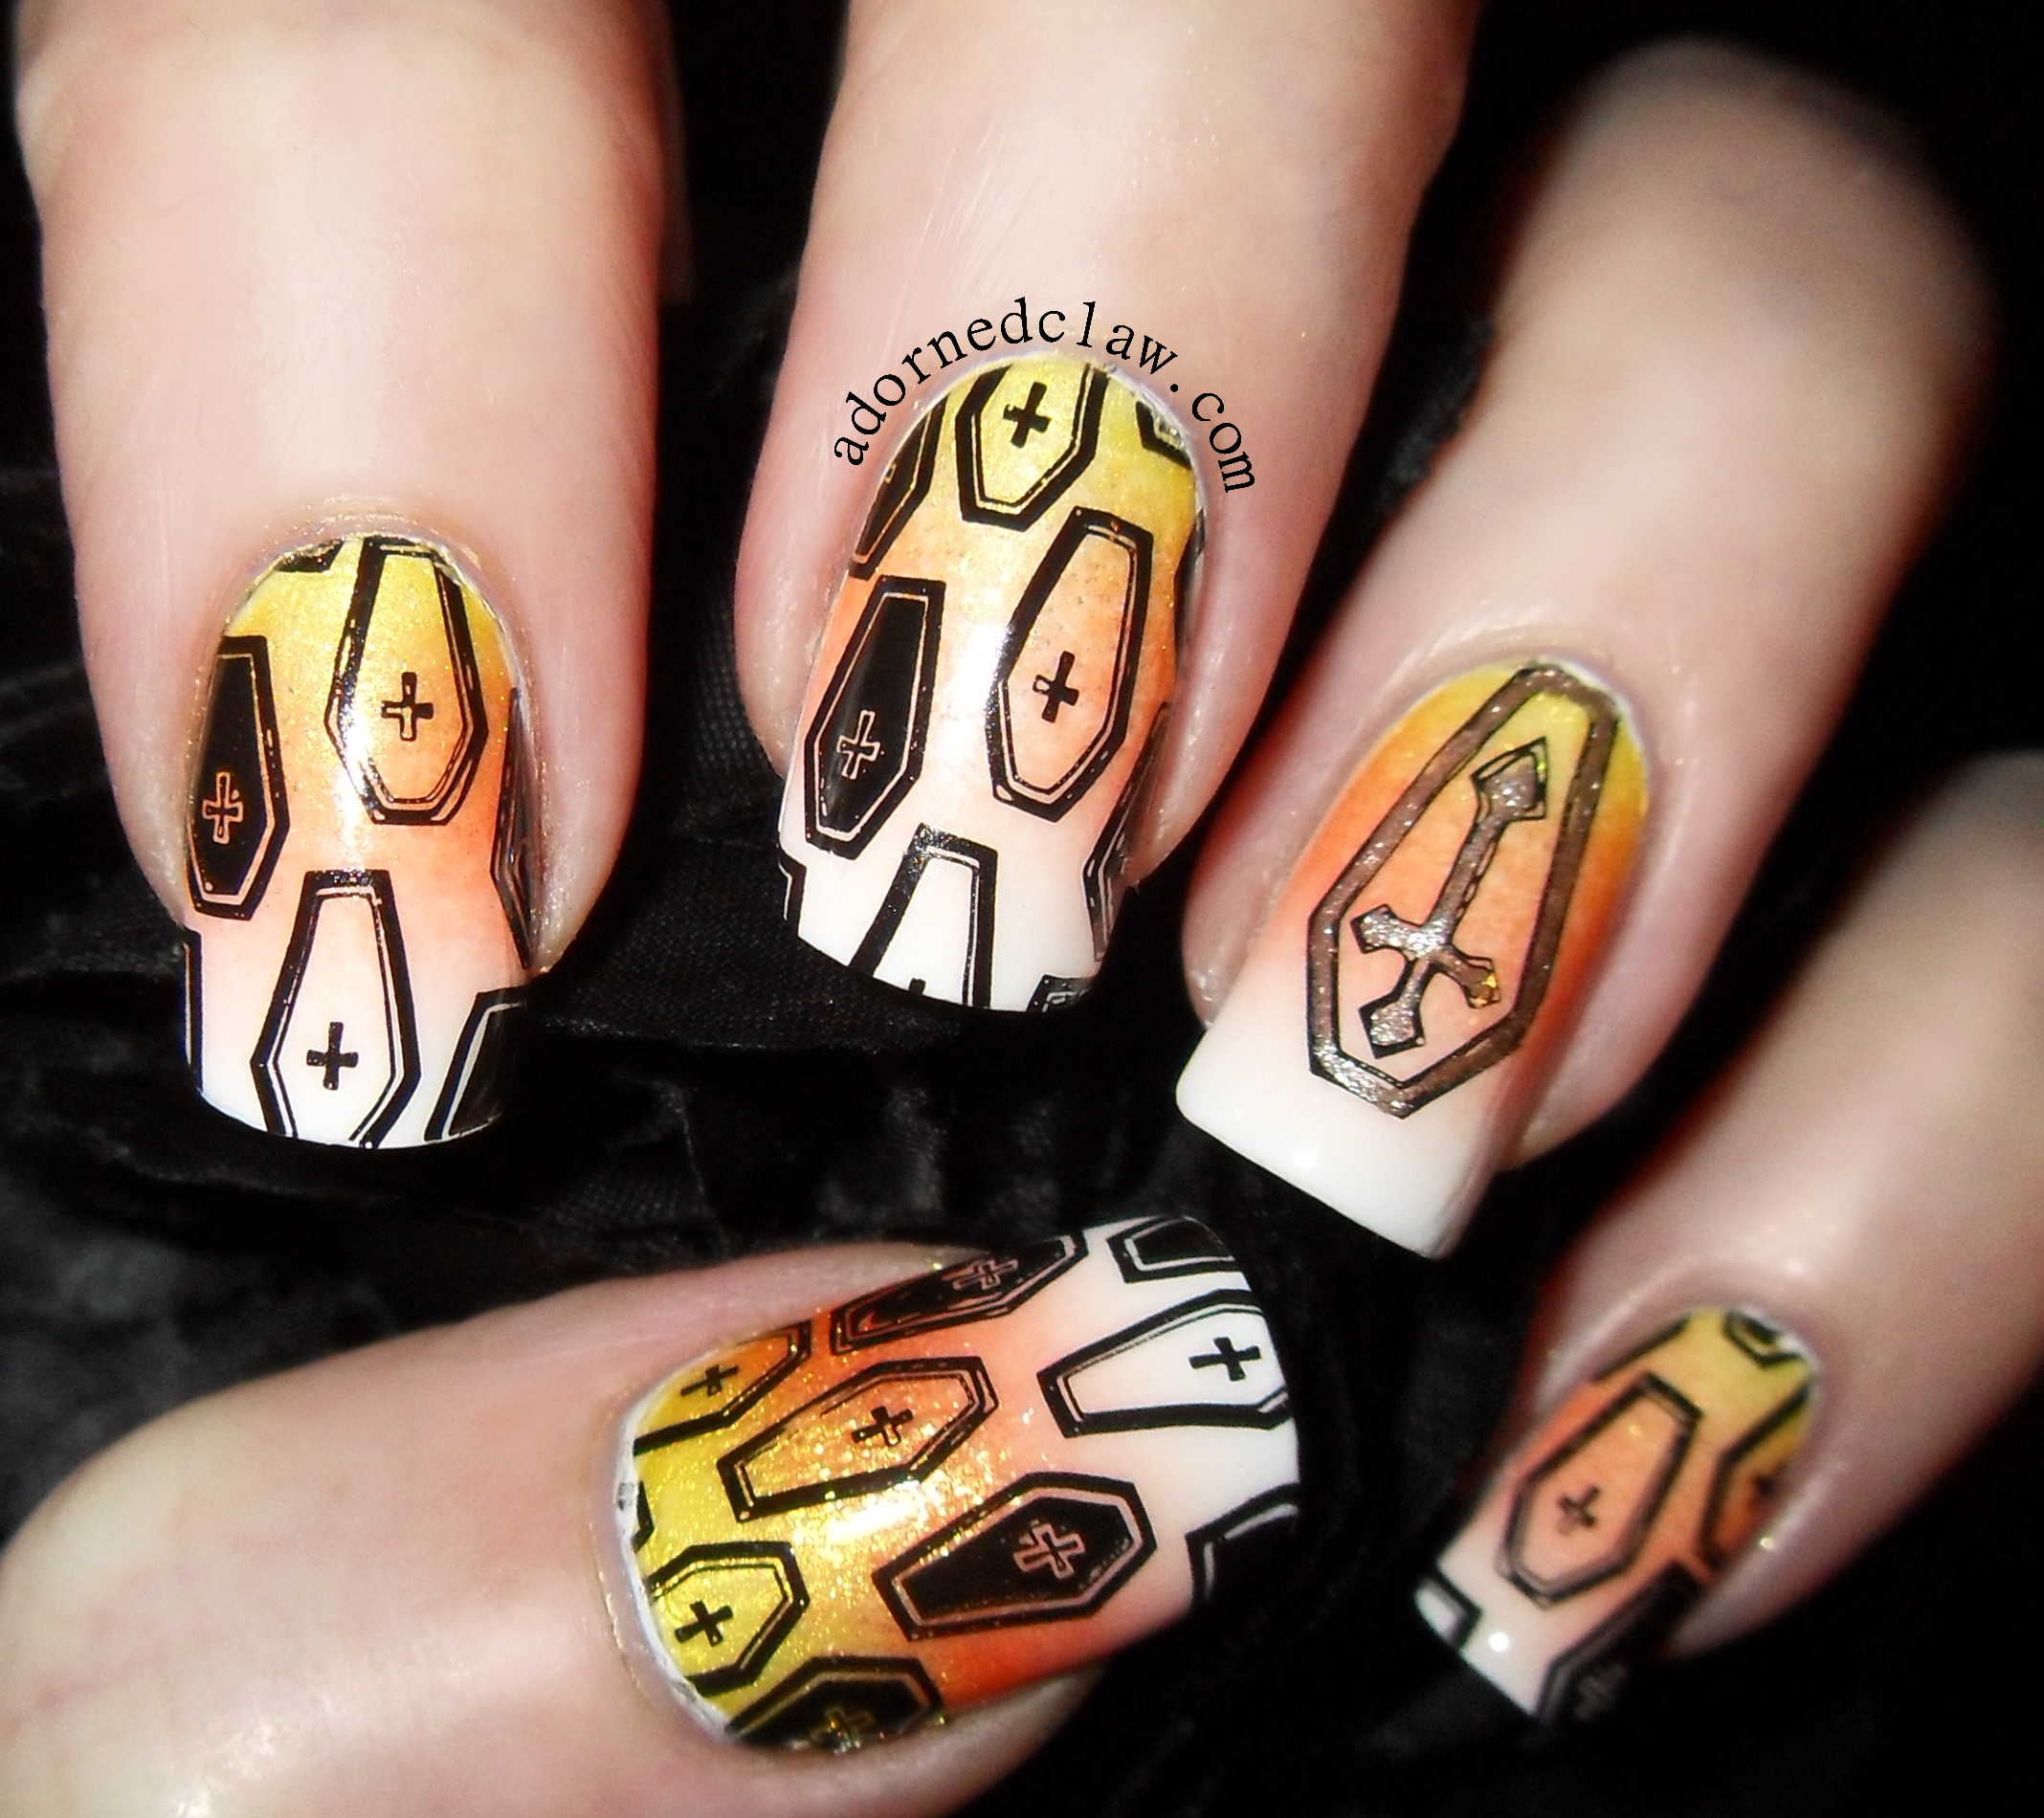 Candy Corn Nails | The Adorned Claw